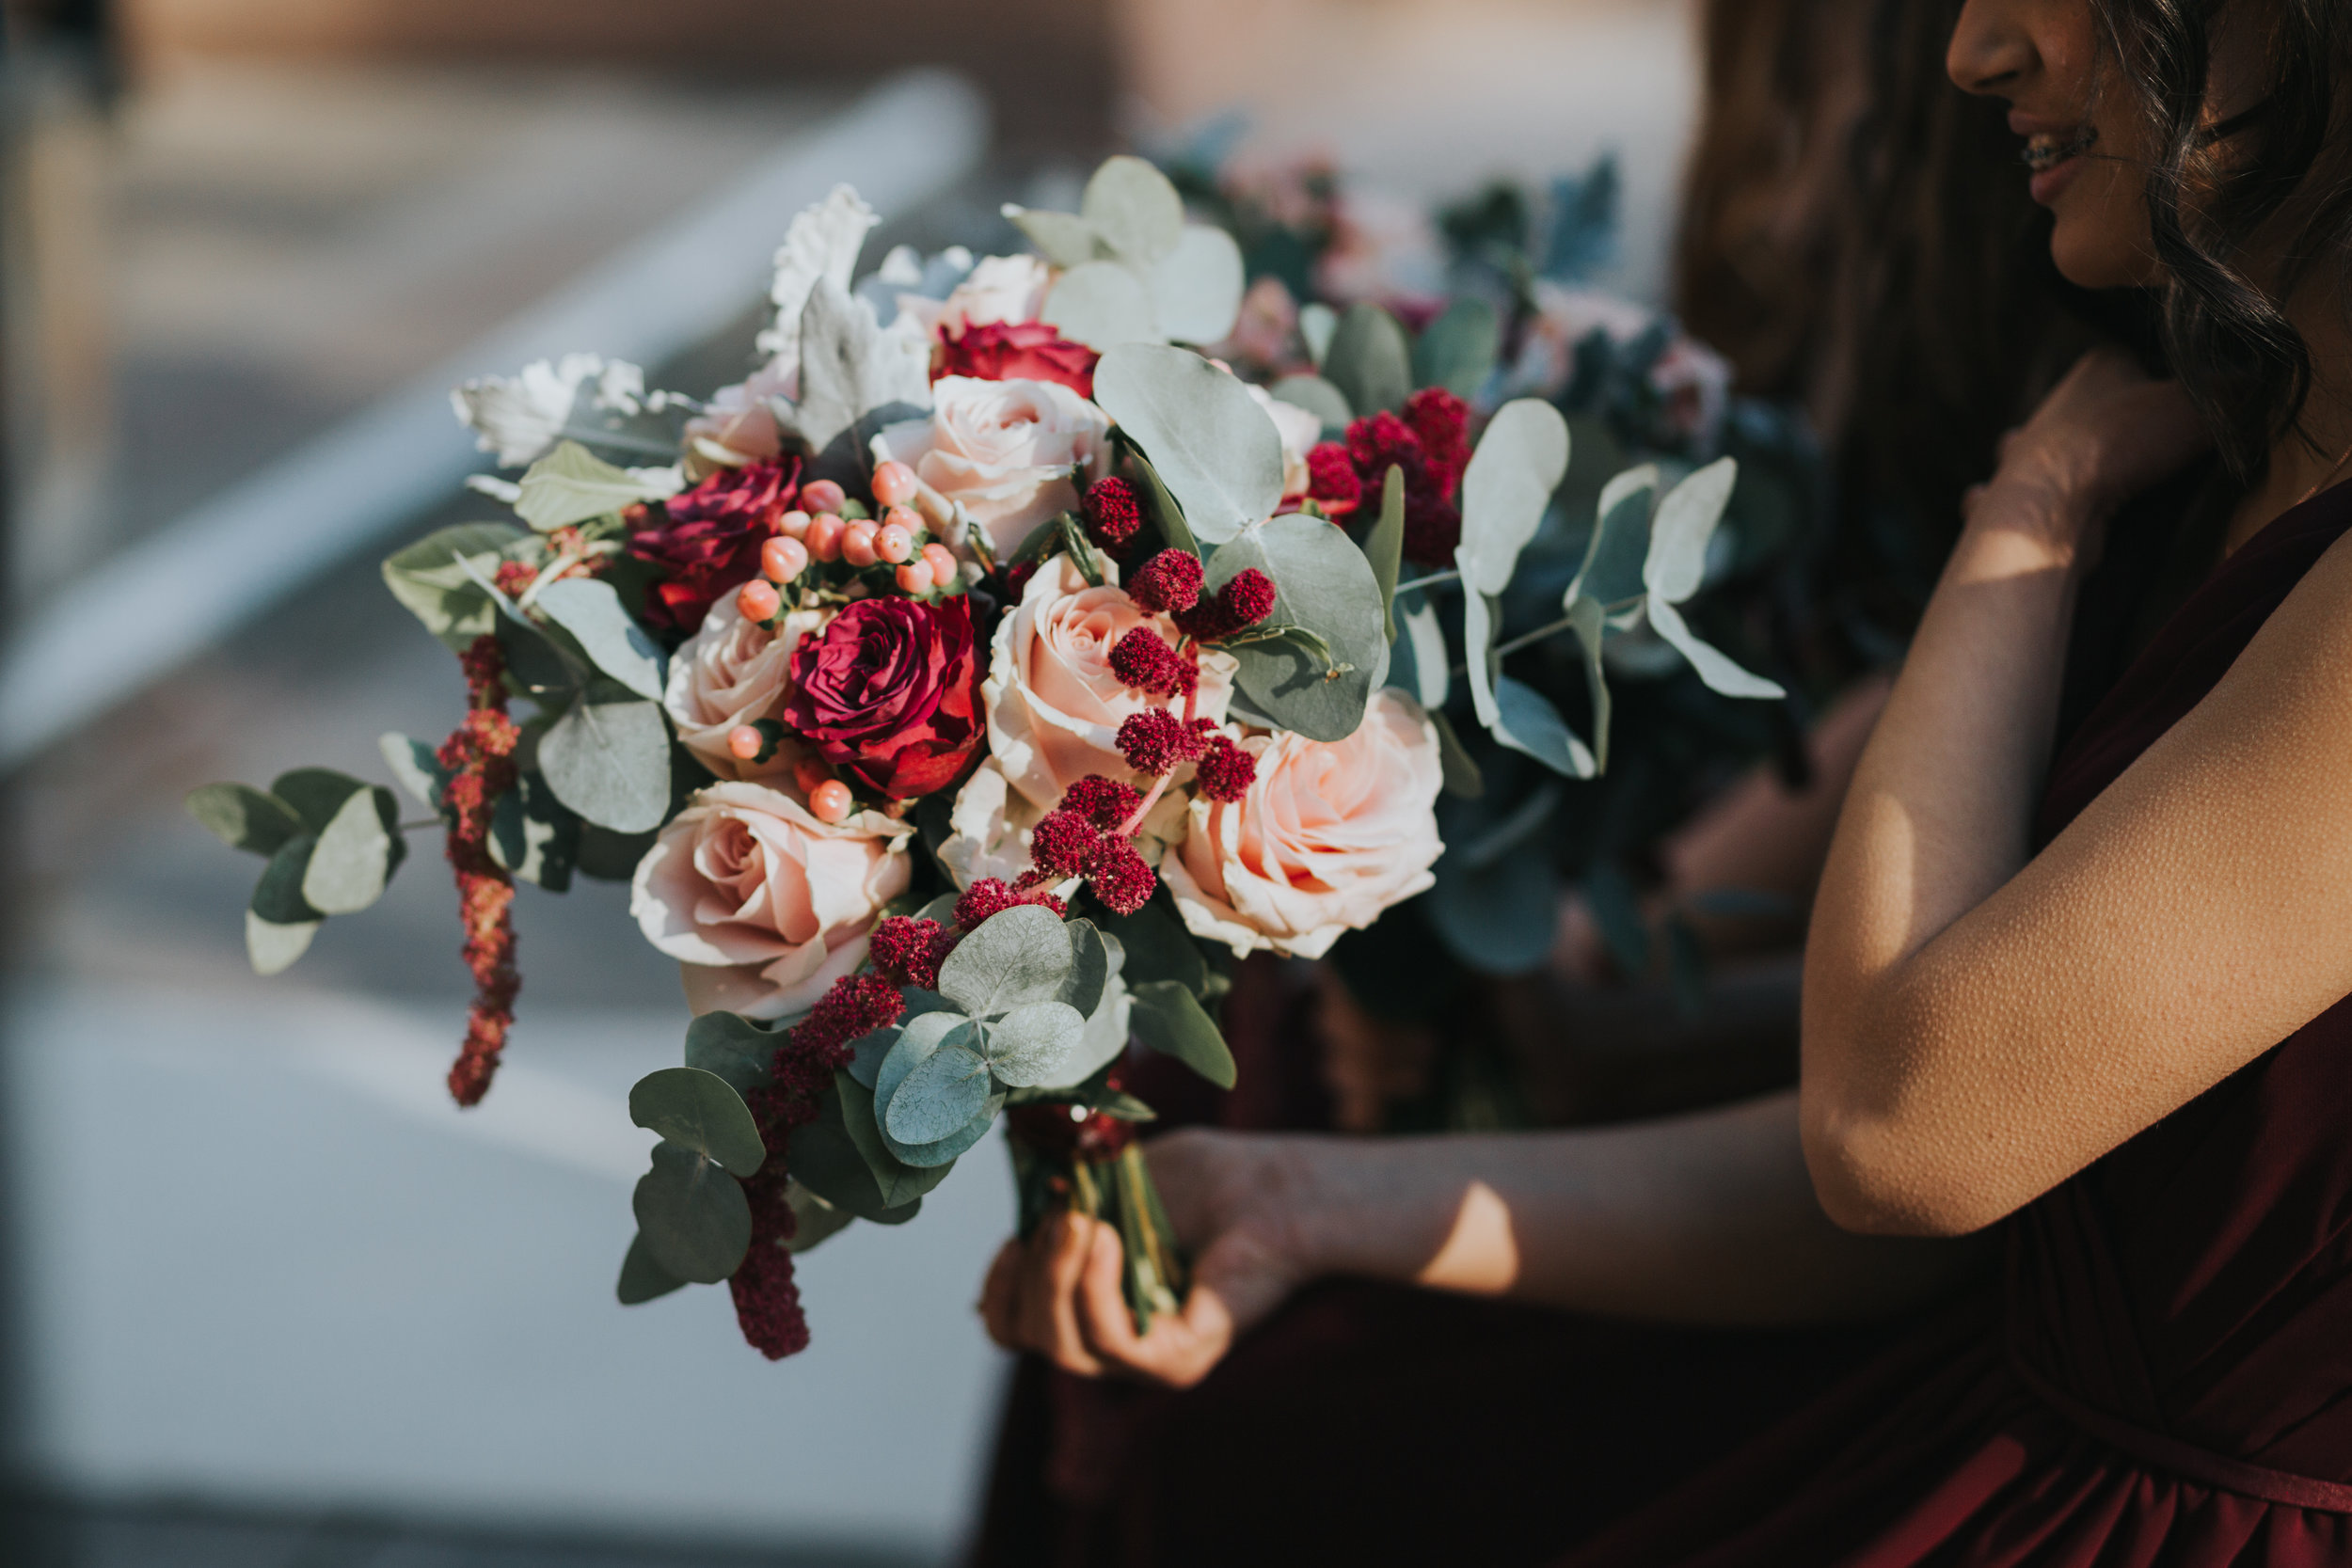 Close up of bouquet of flowers including red roses and berries, pink roses and eucalyptus branches.